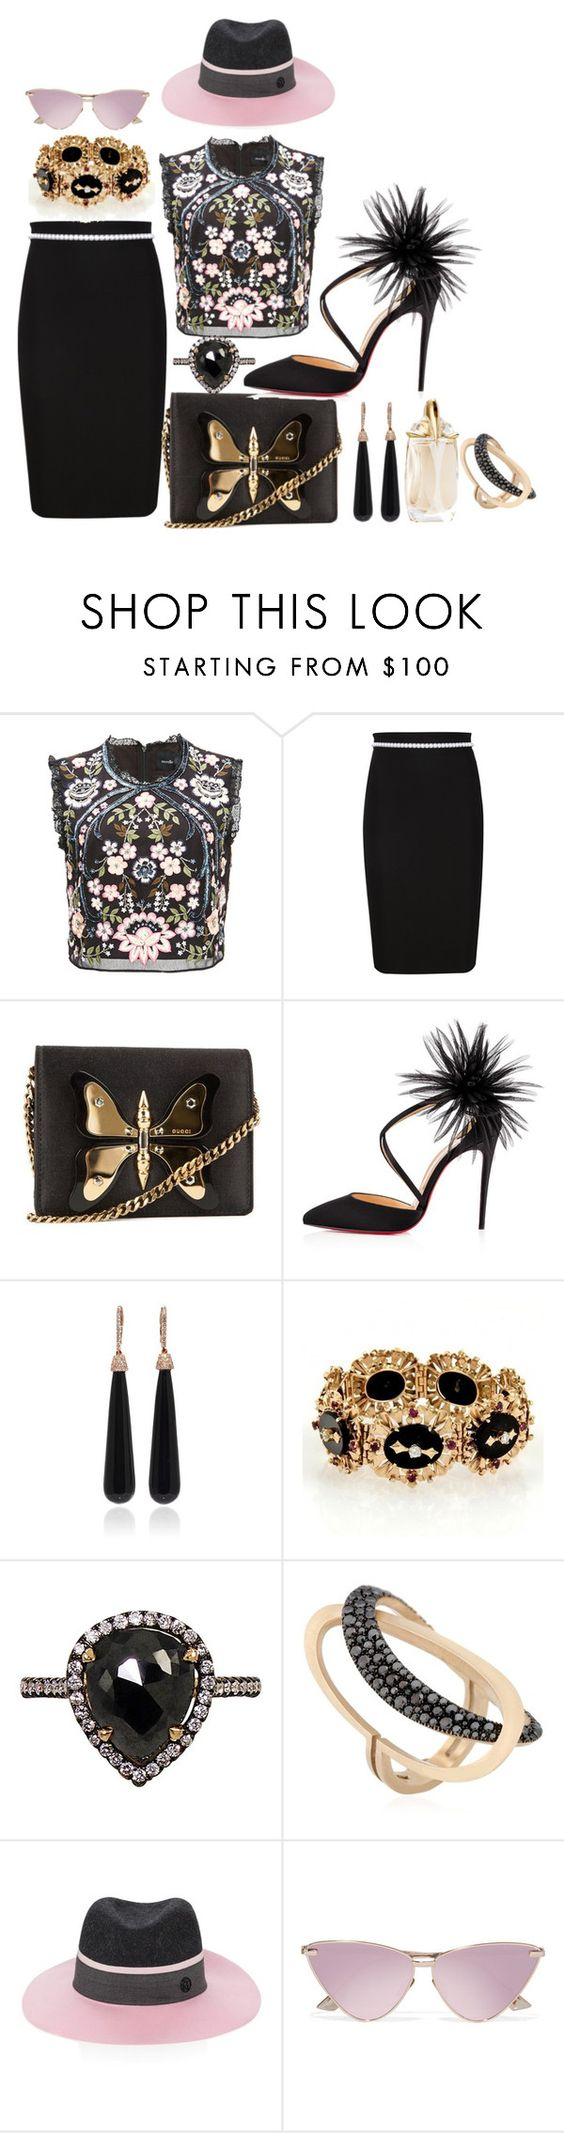 """""""Dedicated to Me & My Dreams"""" by blujay1126 ❤ liked on Polyvore featuring Marco de Vincenzo, Thierry Mugler, Gucci, Christian Louboutin, SUSAN FOSTER, Mike Saatji, ANTONINI, Maison Michel and Le Specs"""